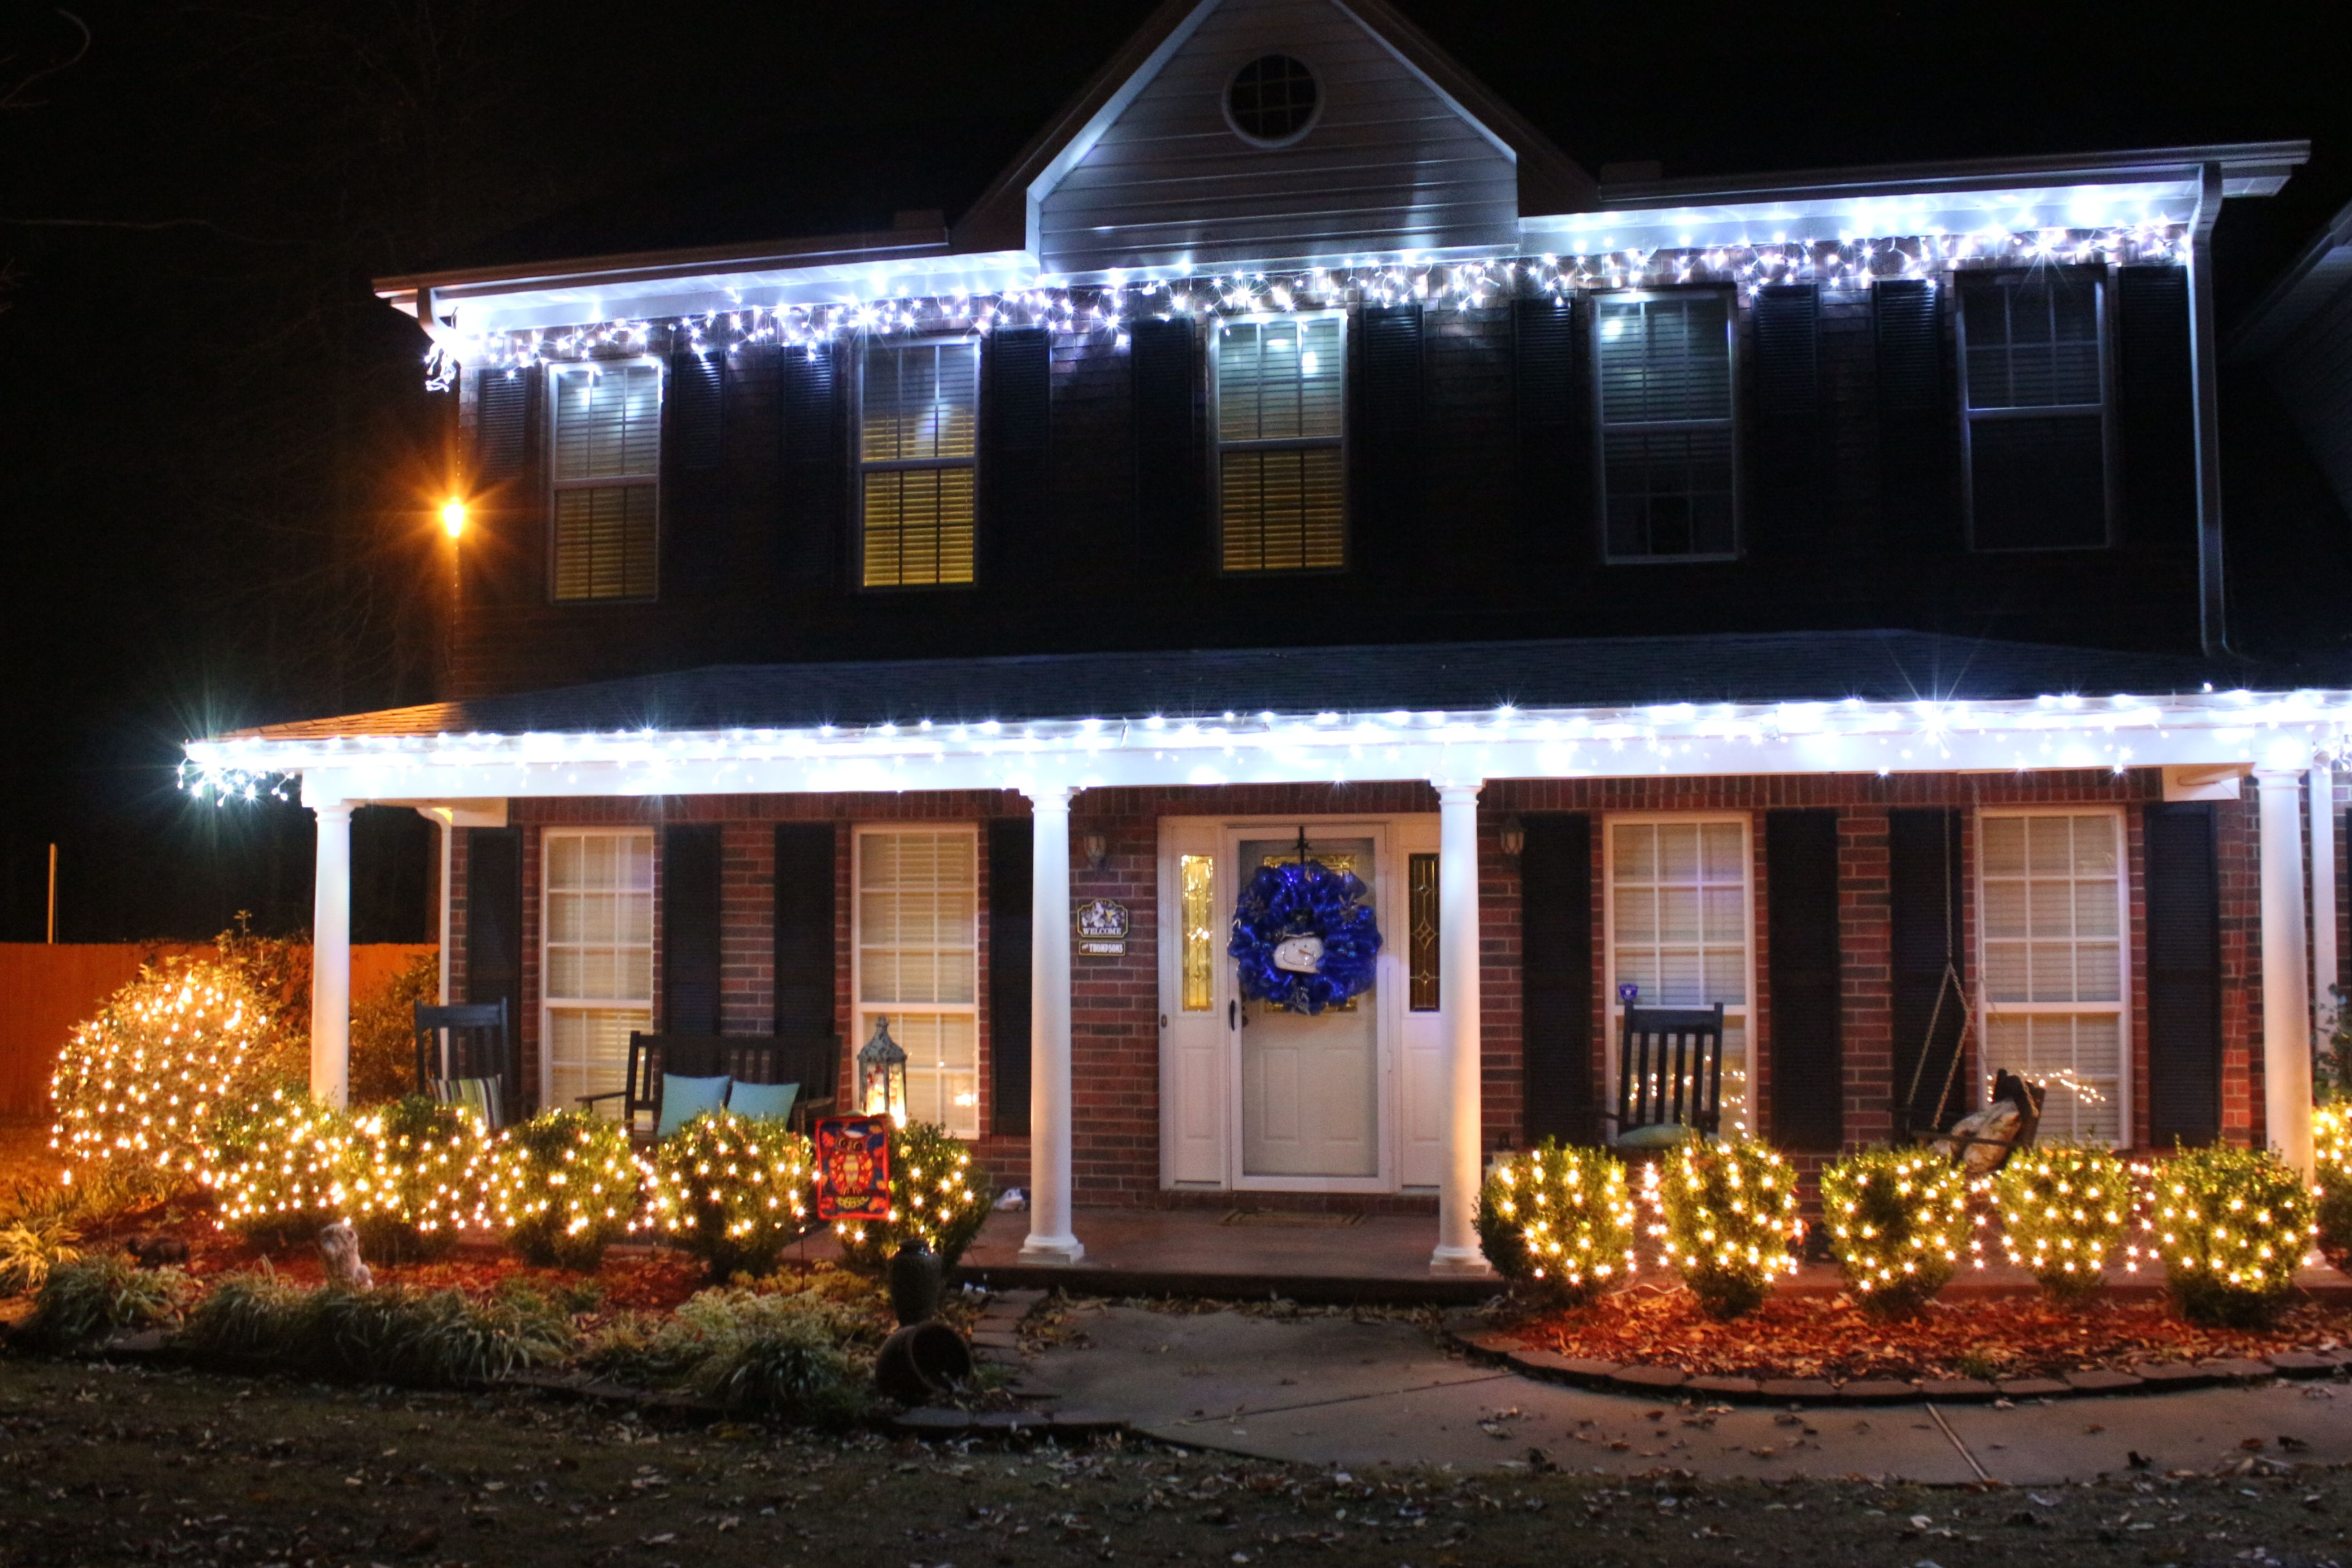 A Beautiful House Using Our White Christmas Hooks To Hang